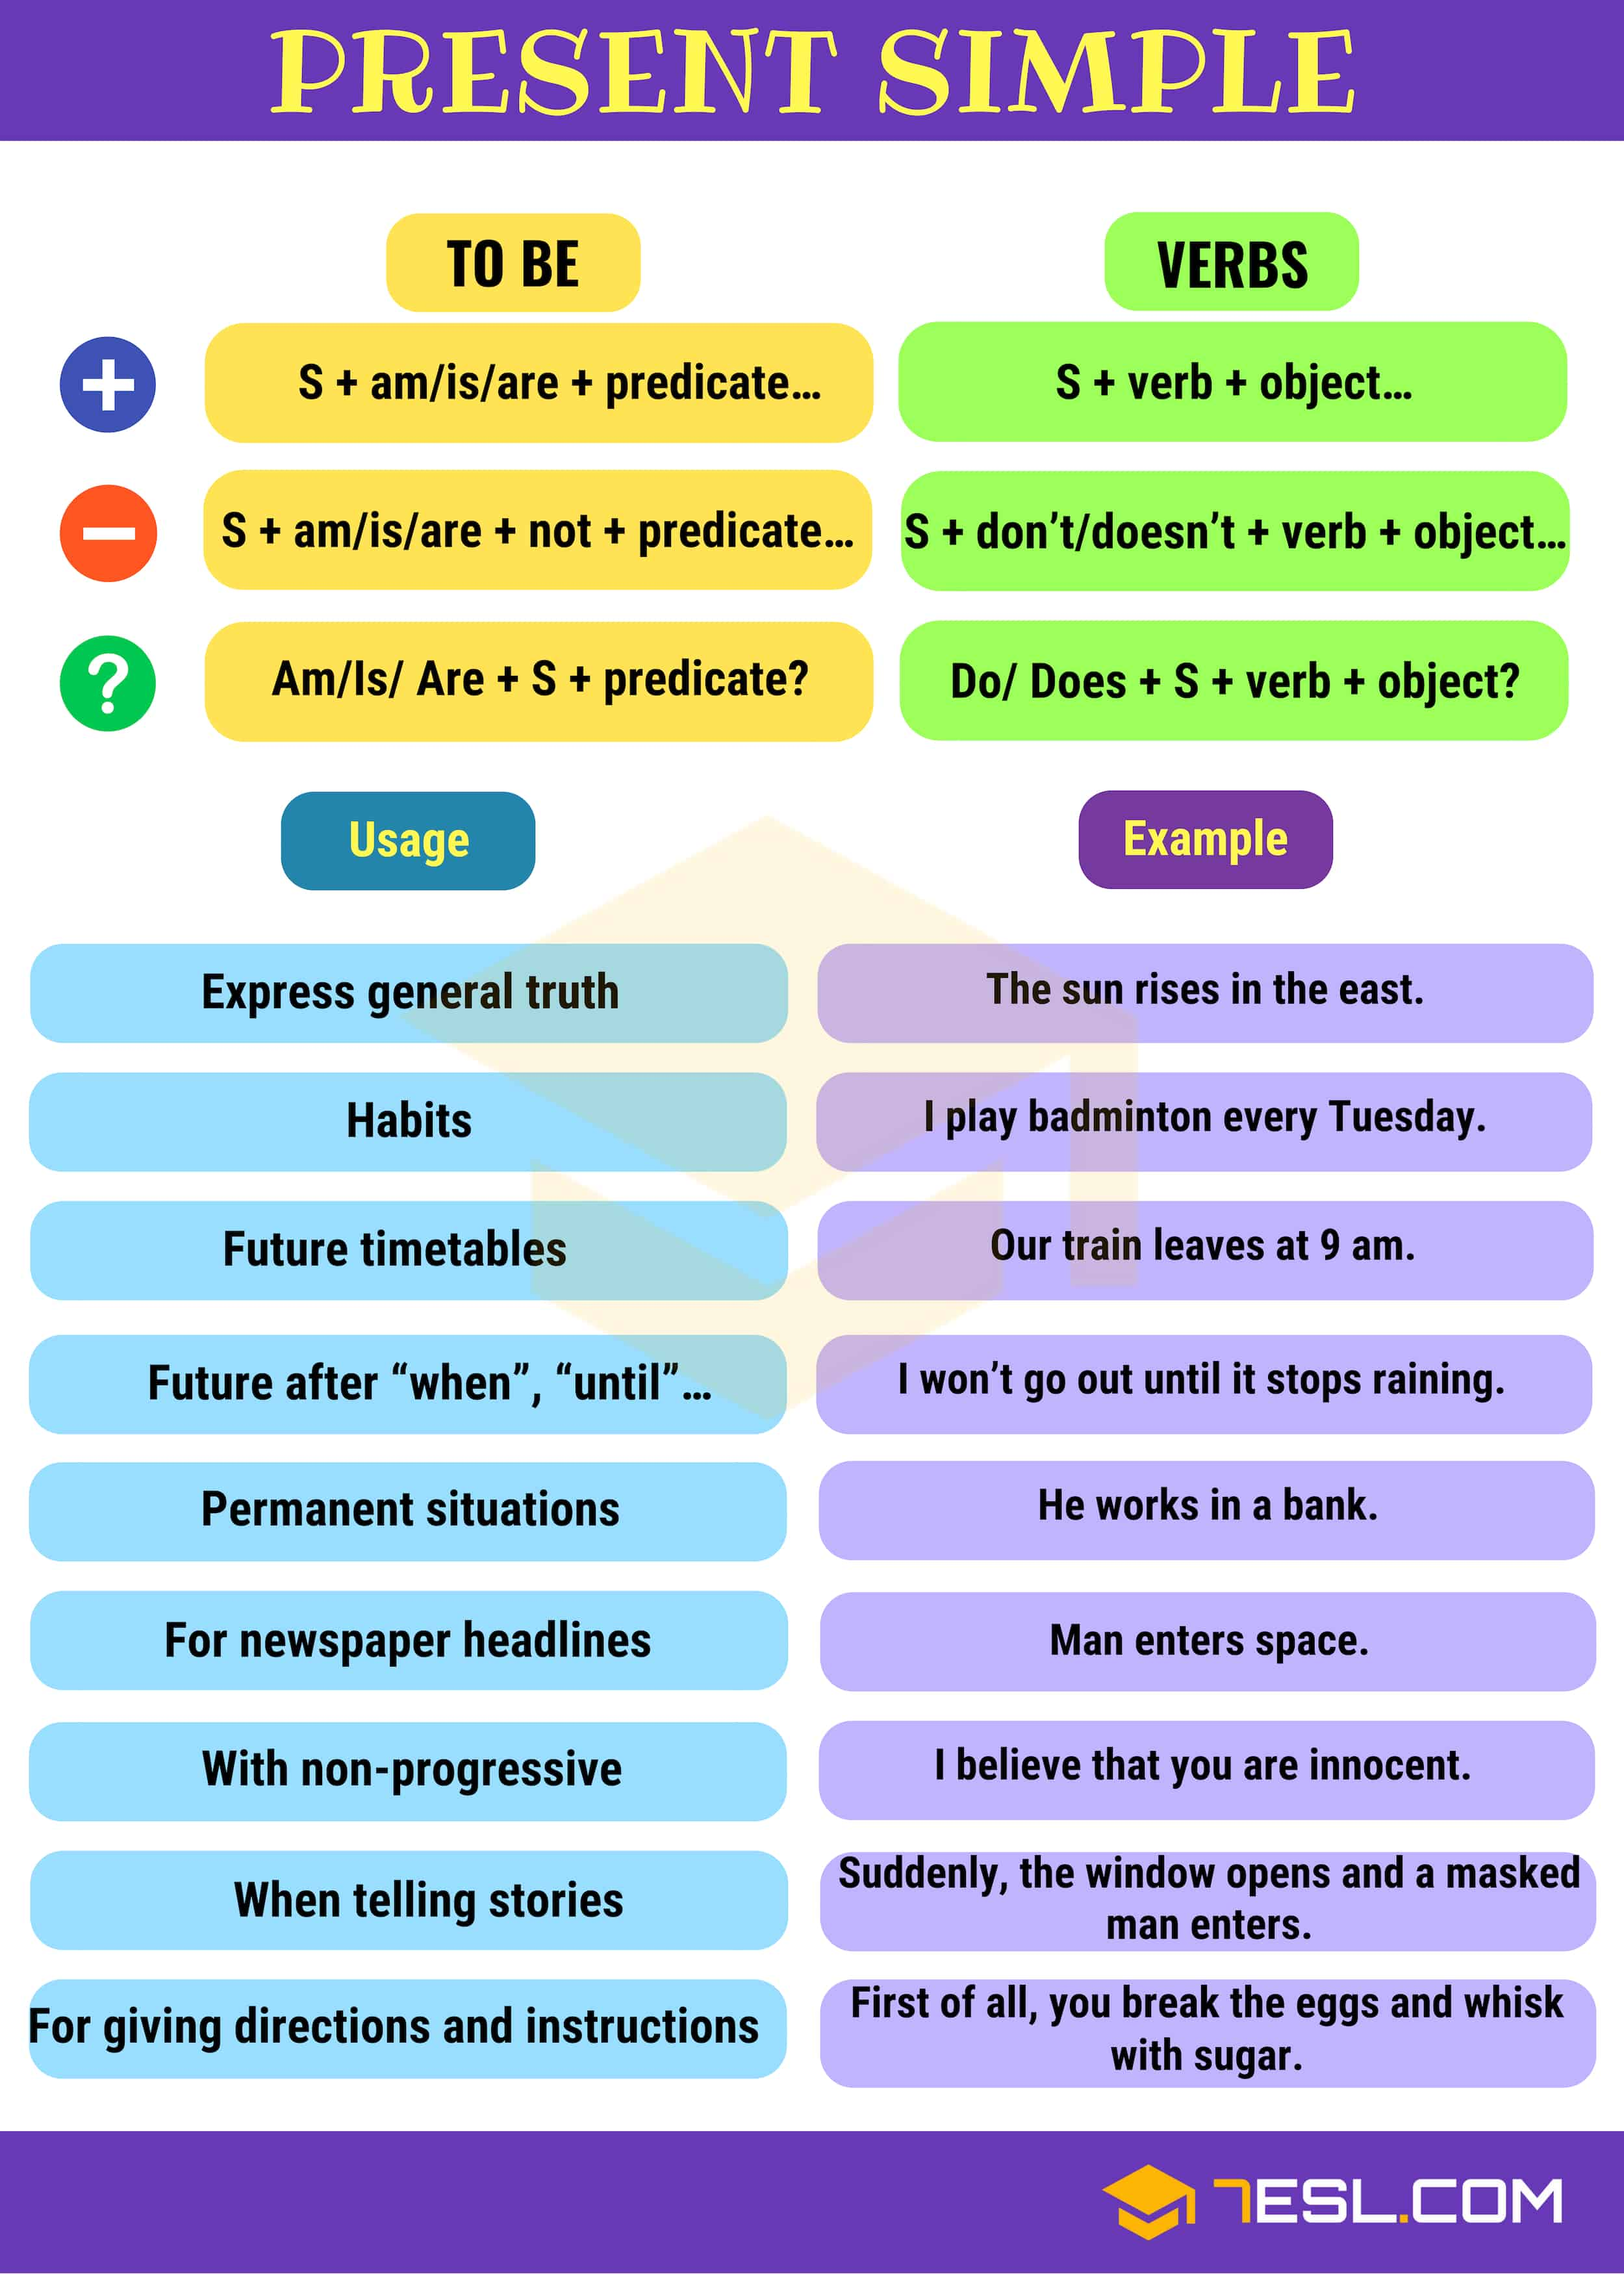 Present Simple Tense Simple Present Definition Rules And Useful Examples 7esl